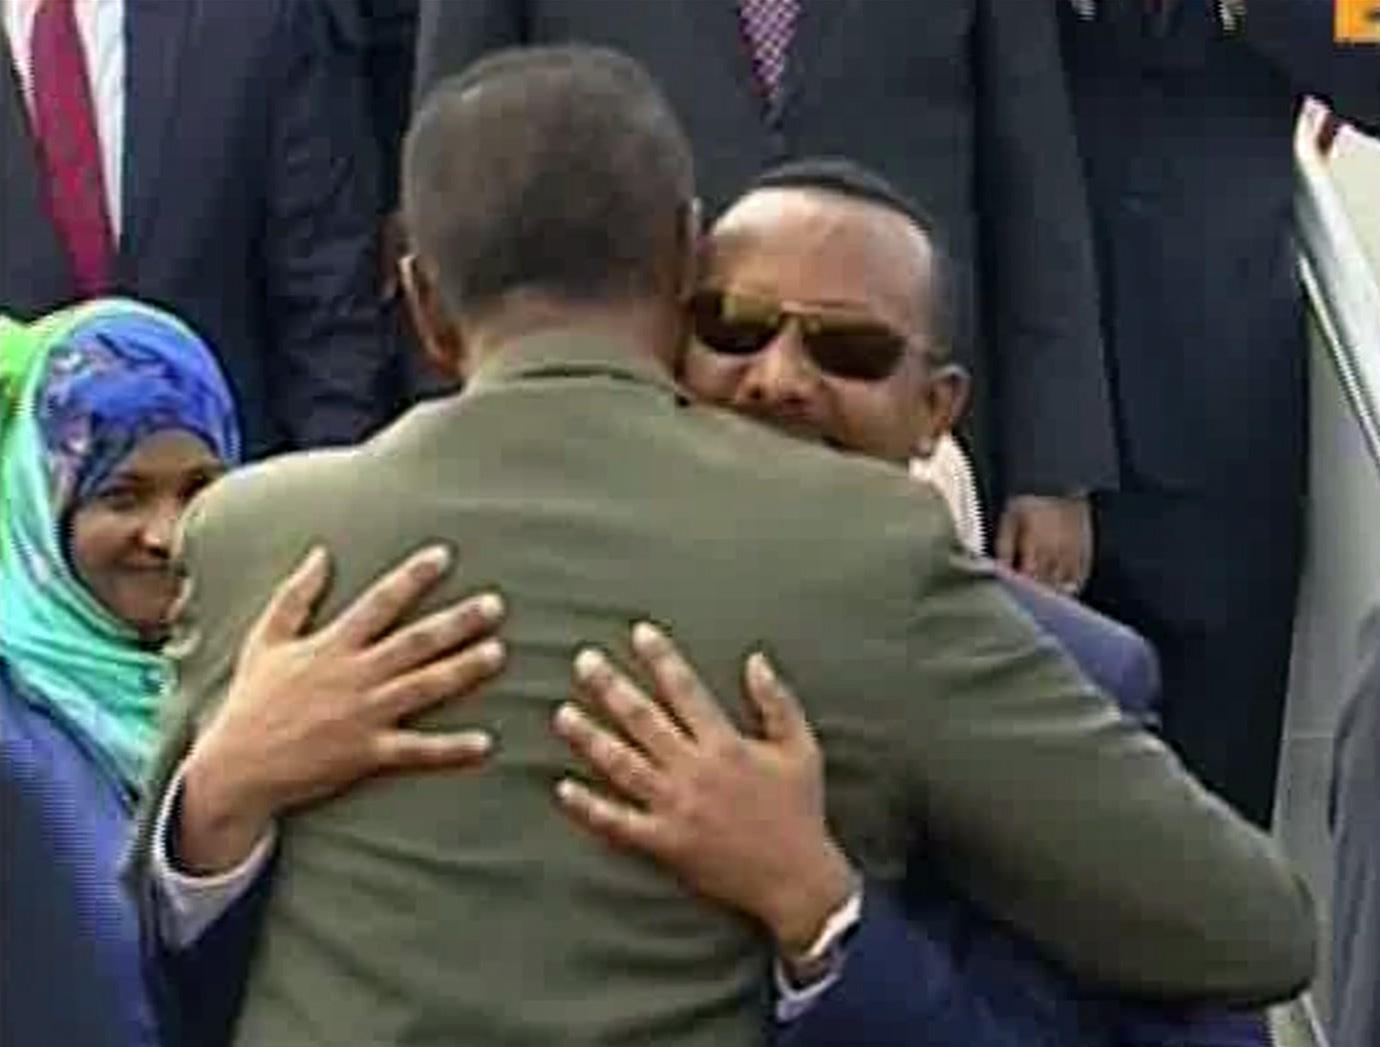 Ethiopian Prime Minister Abiy Ahmed, background, is welcomed by Eritrean President Isaias Afwerki as he disembarks a plane on Sunday in Asmara, Eritrea.